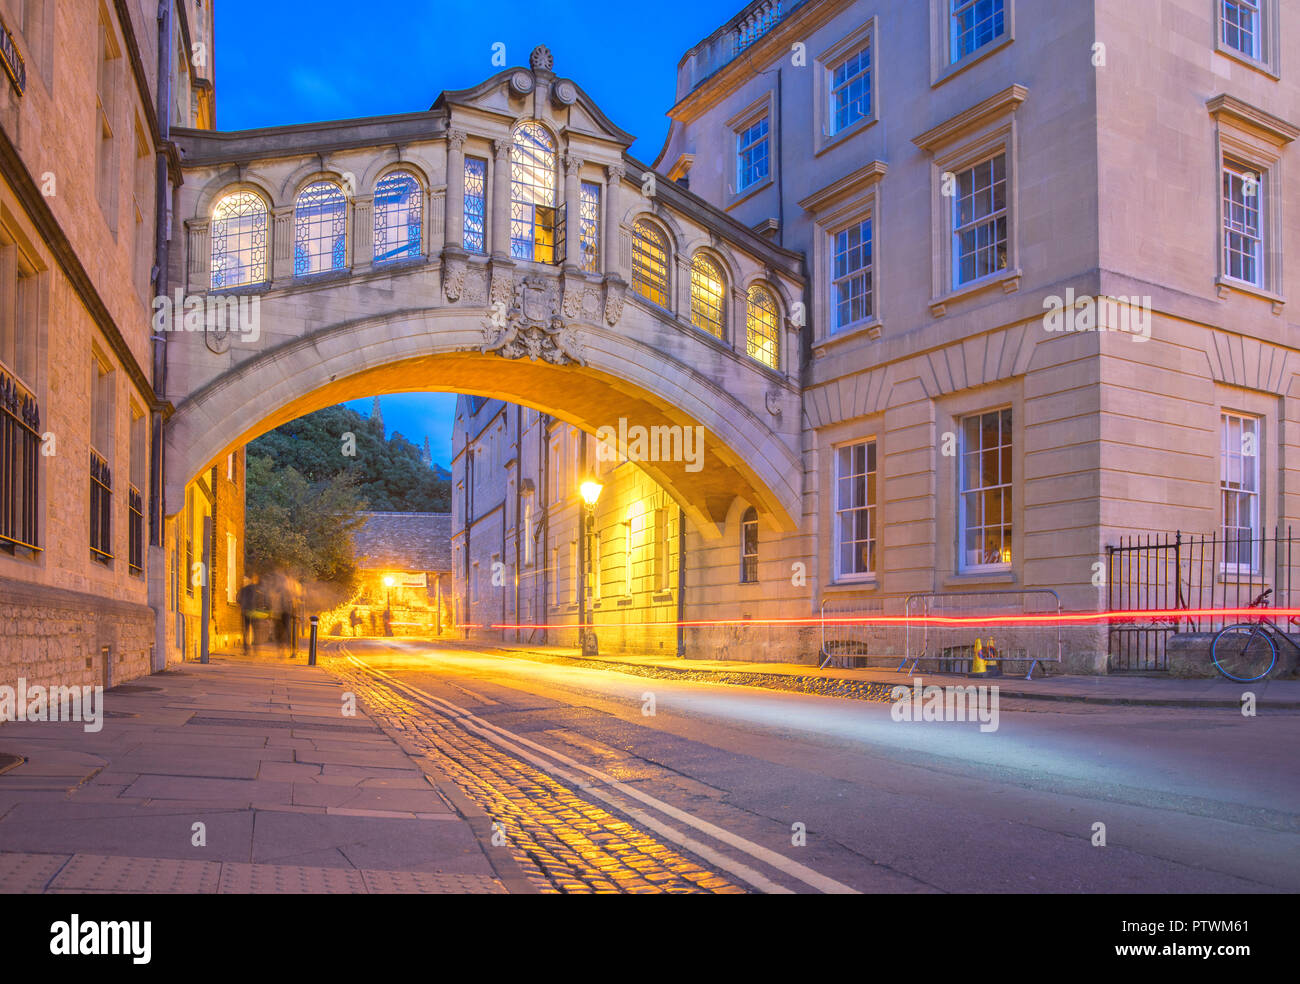 Hertford Bridge, Oxford University  'the Bridge of Sighs', is a skyway joining two parts of Hertford College over New College Lane in Oxford, England. - Stock Image